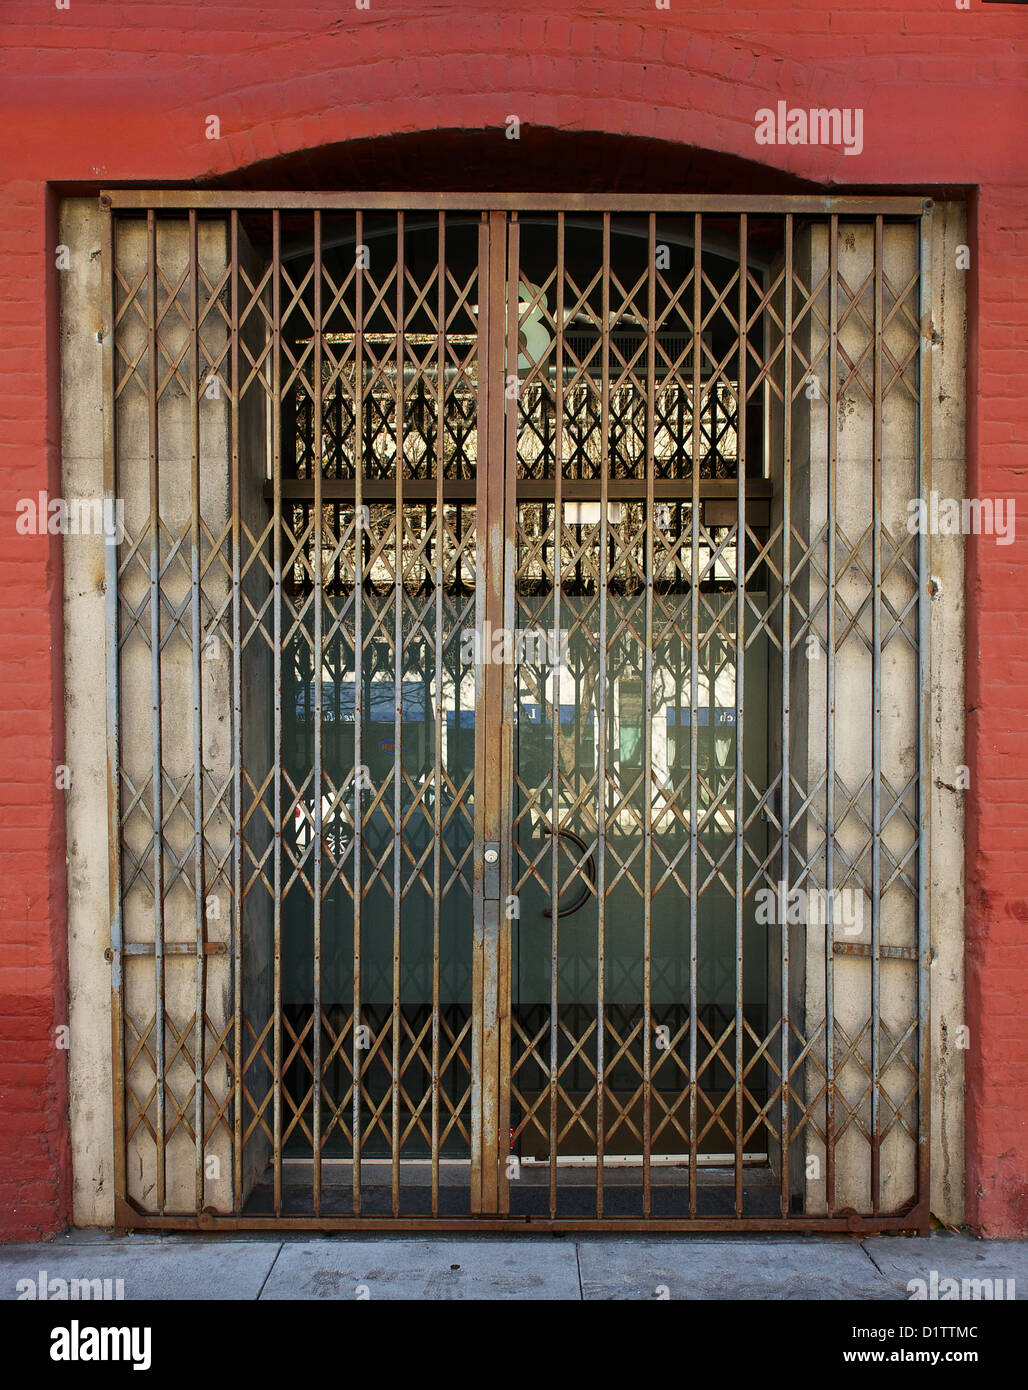 Old Steel Security Gate on door to red brick building Stock Photo